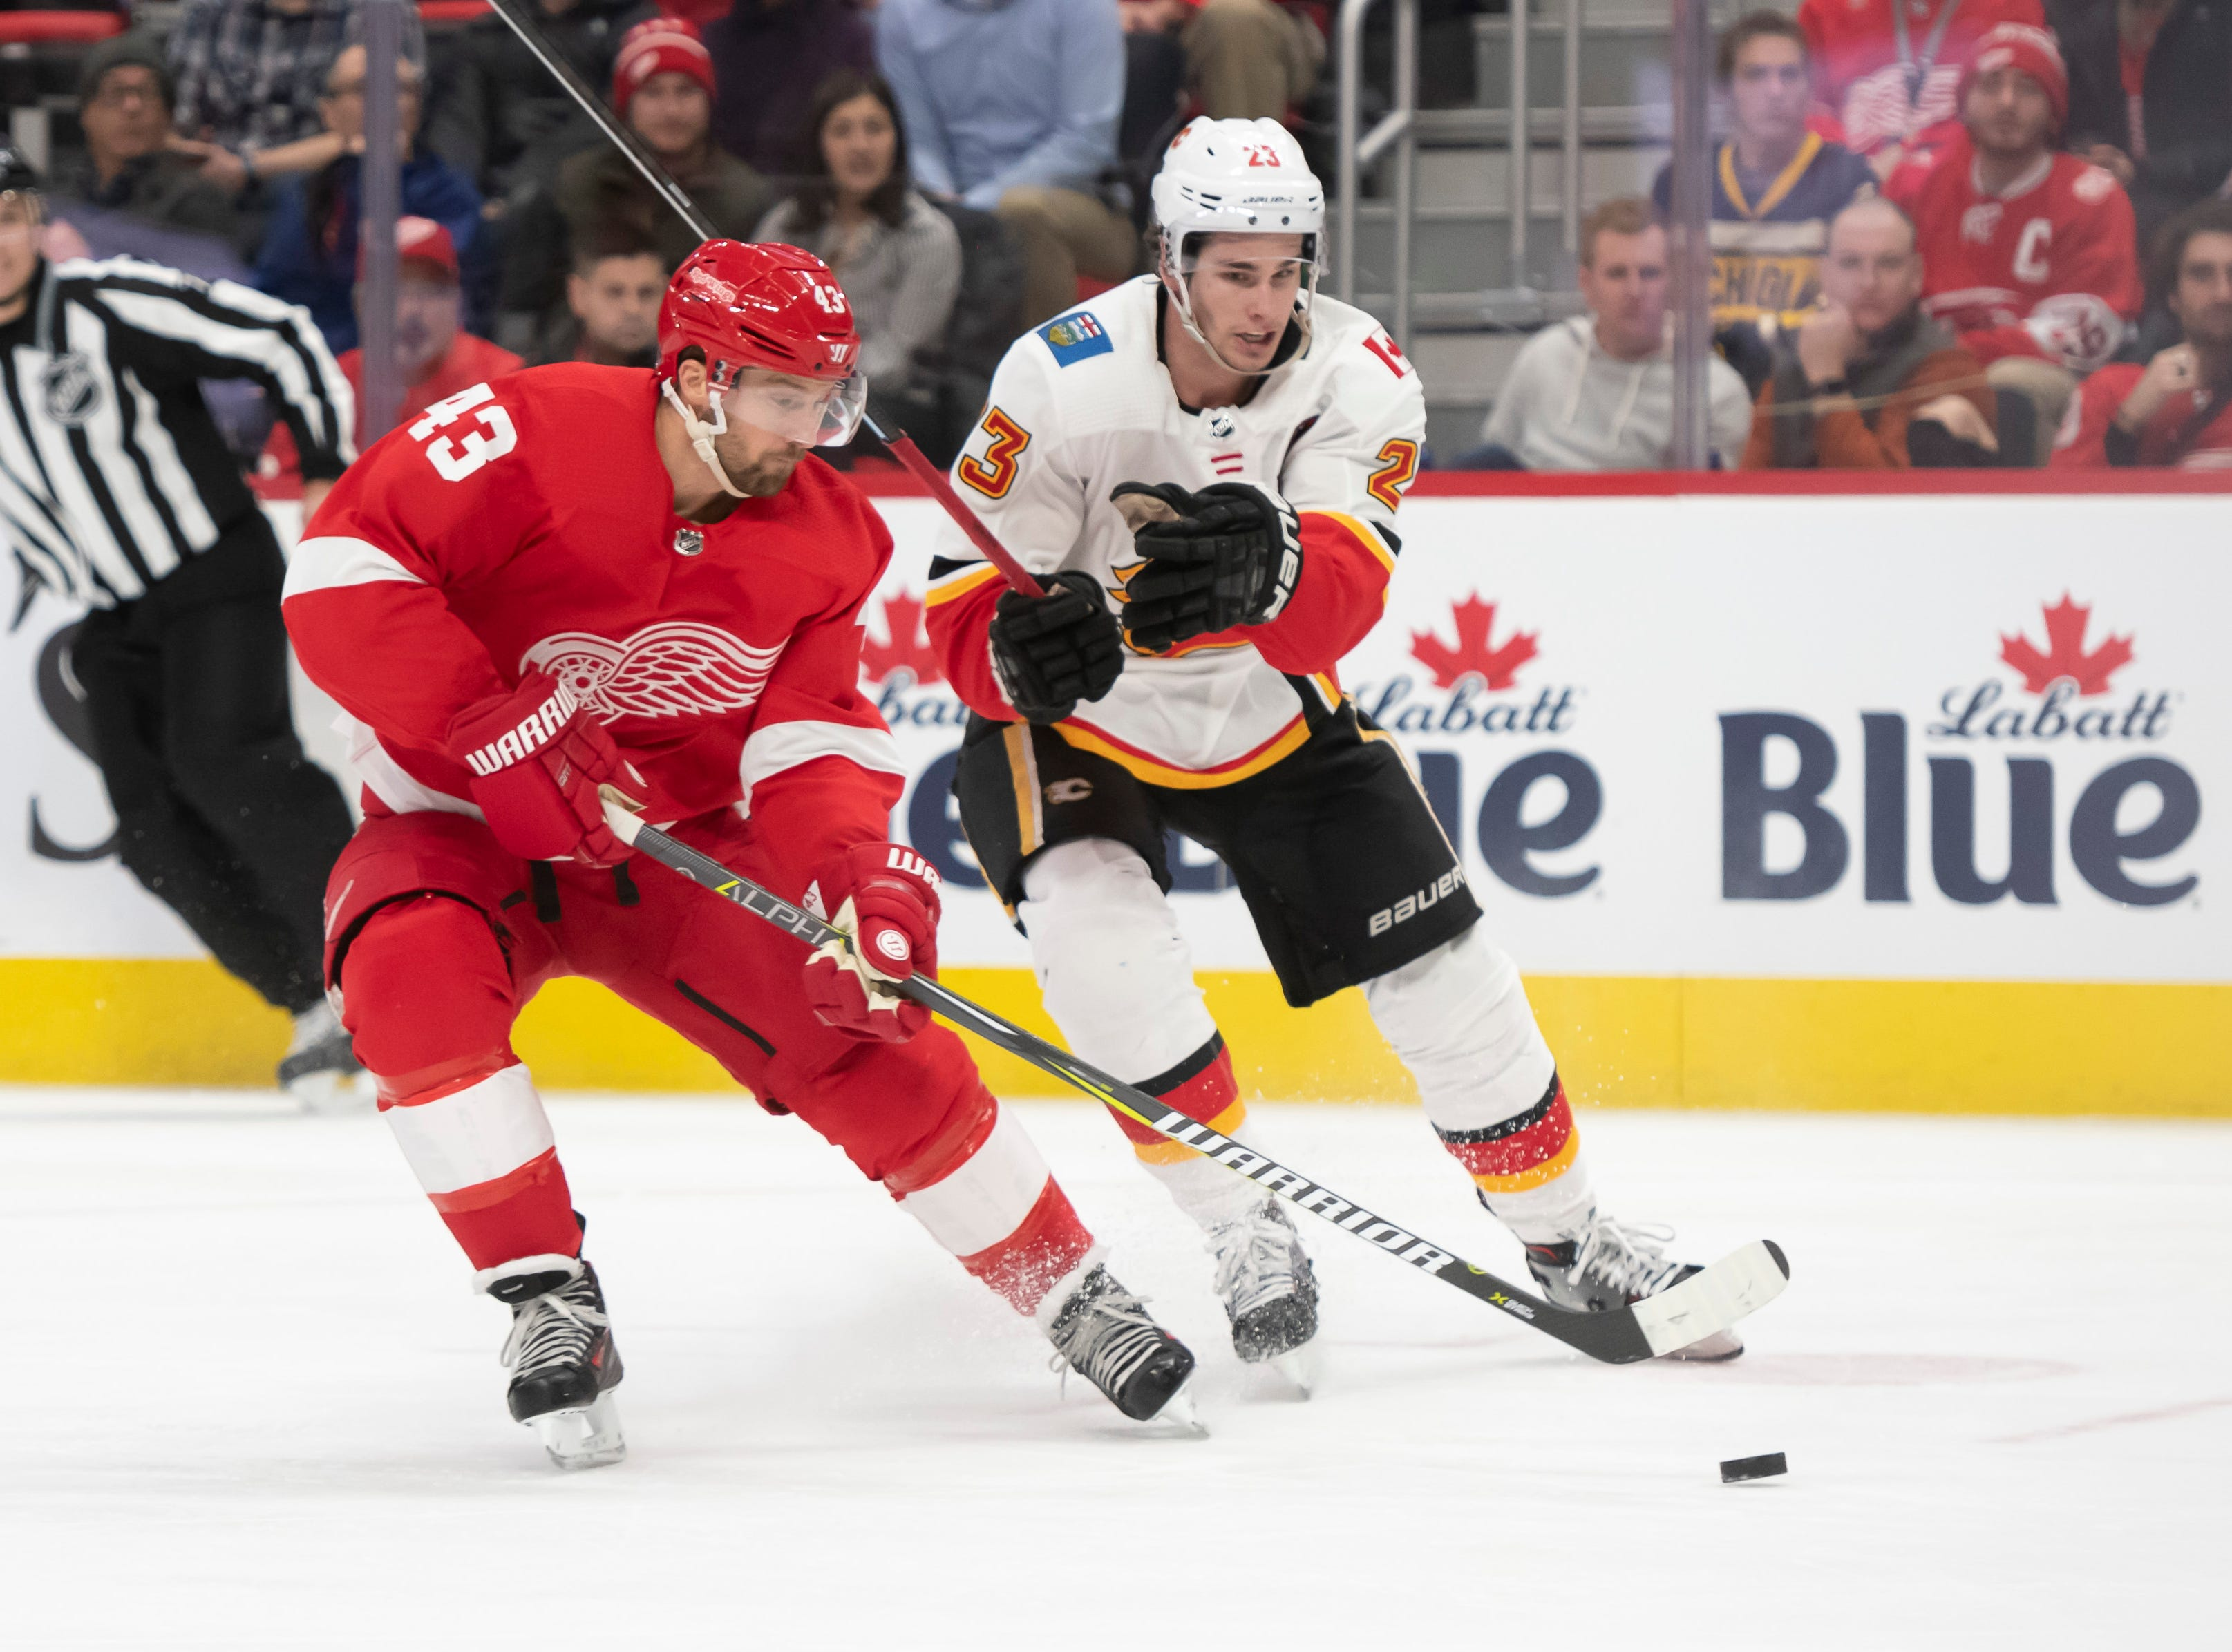 Detroit center Darren Helm keeps the puck away from Calgary center Sean Monahan in the third period.